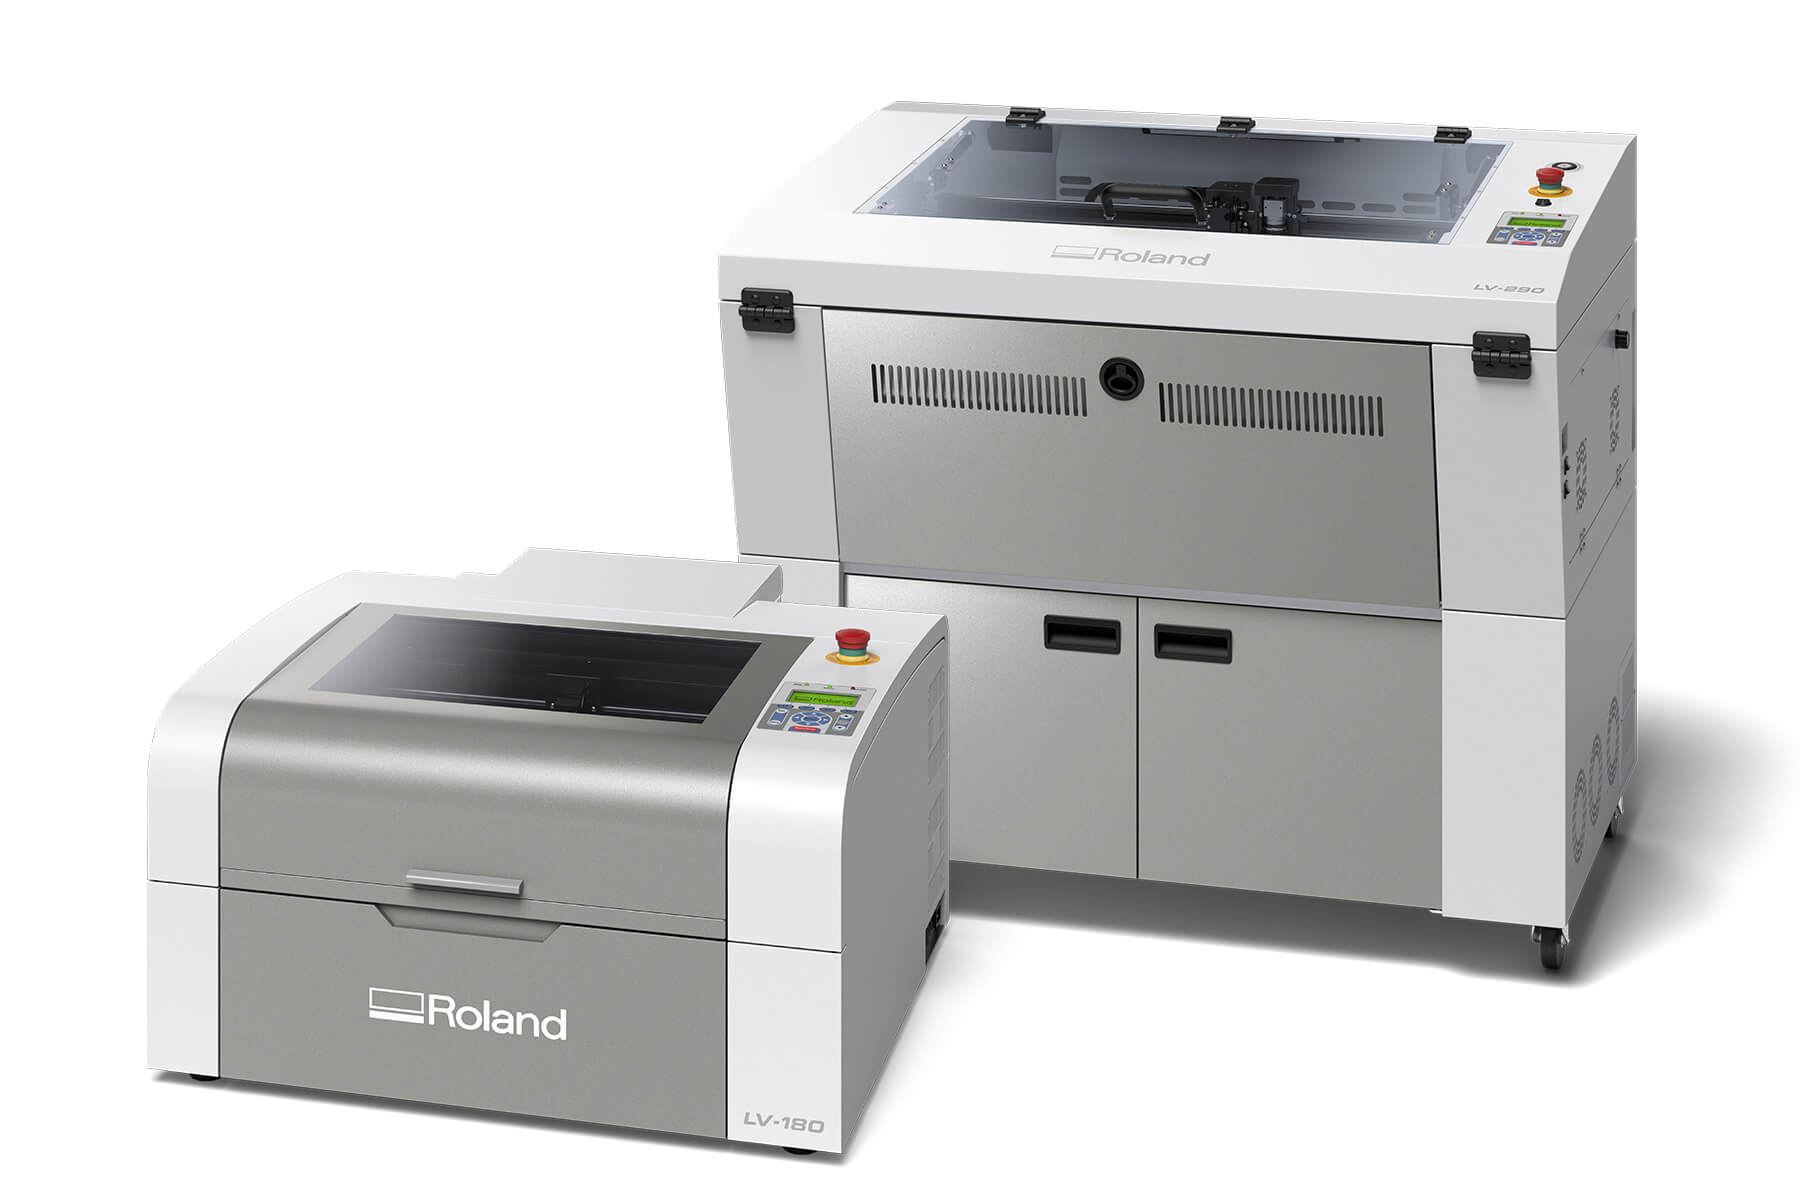 Roland DGA announces the launch of its new LV series laser engraving machines.